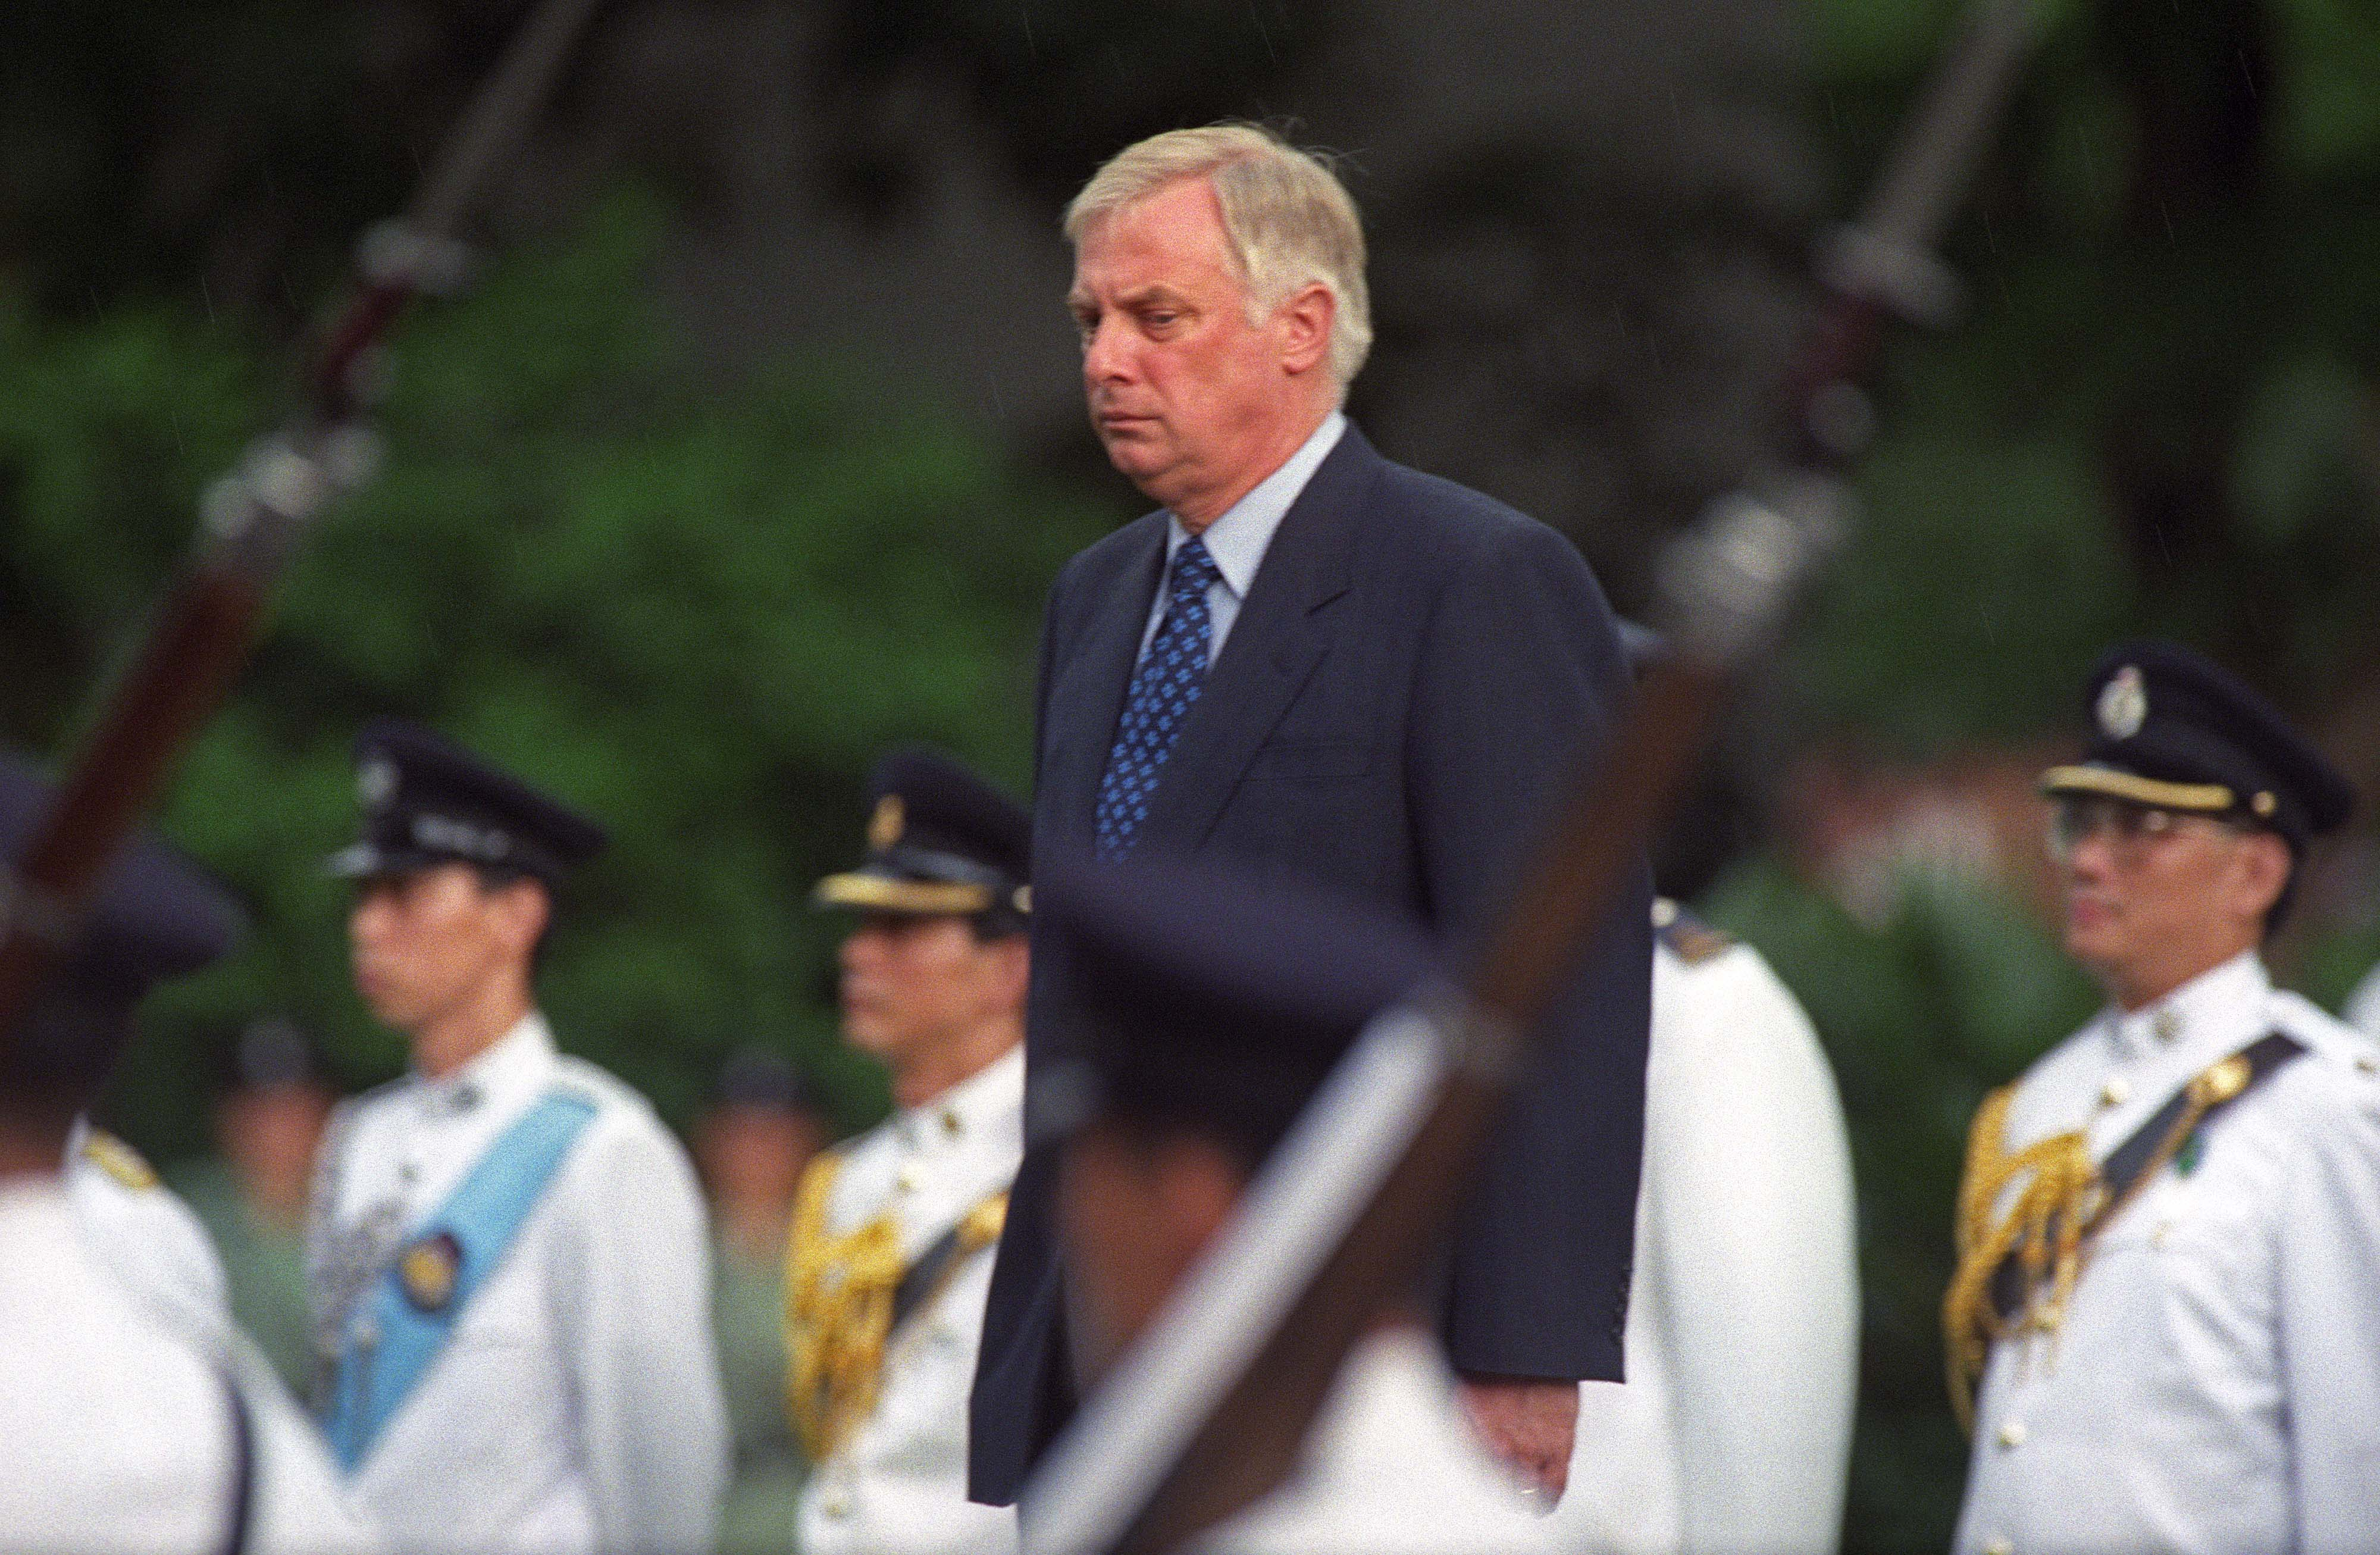 Chris Patten stands for a farewell ceremony at Hong Kong's Government House, Jun. 30, 1997.